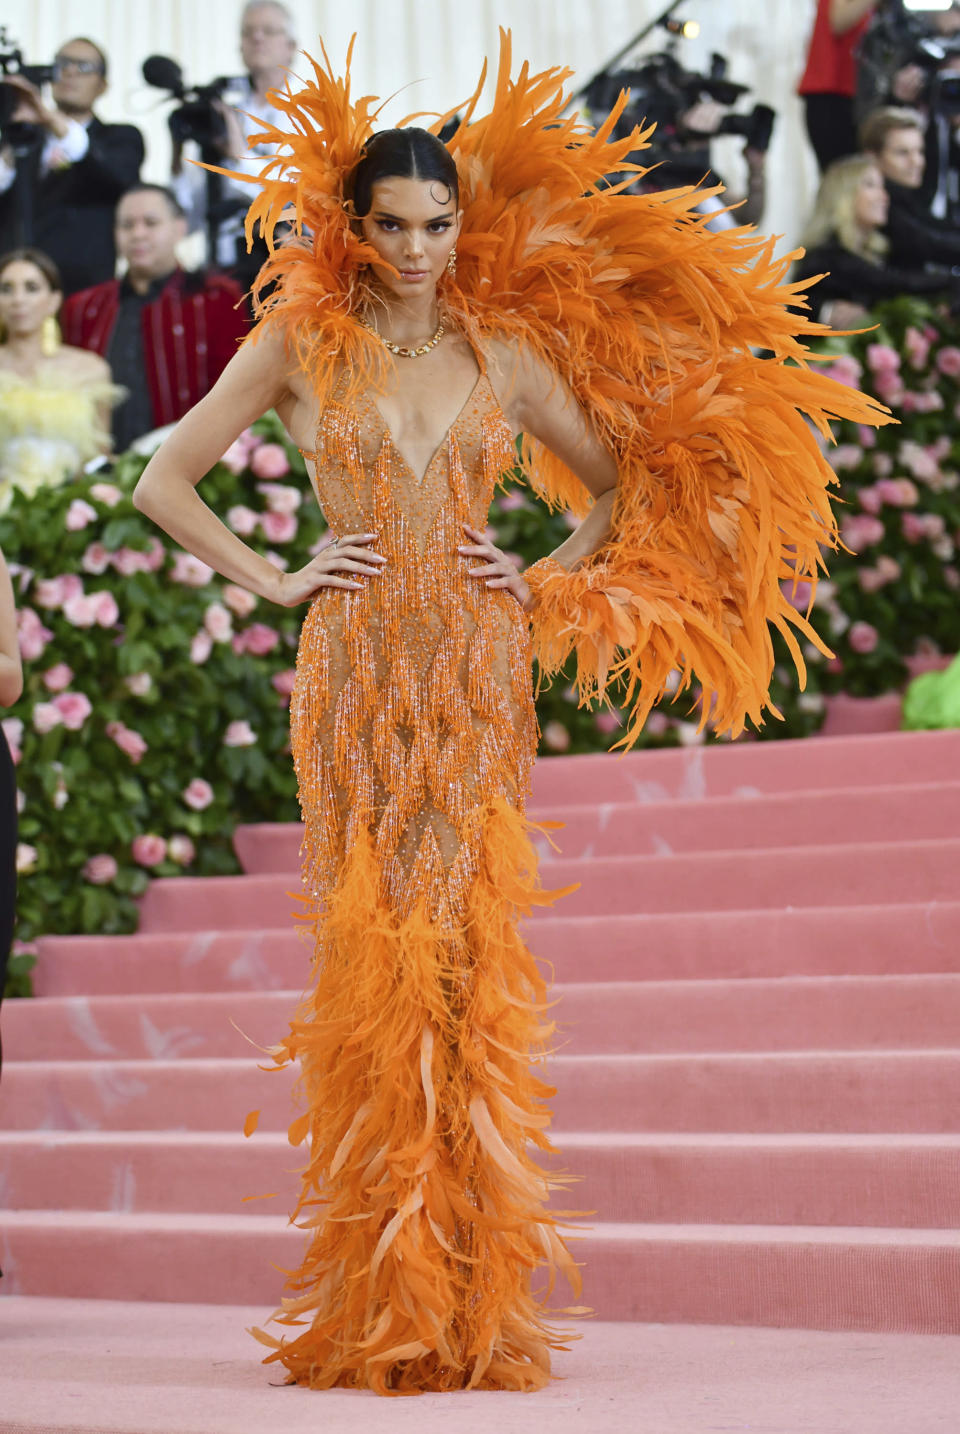 """FILE - Kendall Jenner attends The Metropolitan Museum of Art's Costume Institute benefit gala celebrating the opening of the """"Camp: Notes on Fashion"""" exhibition on May 6, 2019, in New York. Jenner turns 25 on Nov. 3. (Photo by Charles Sykes/Invision/AP, File)"""